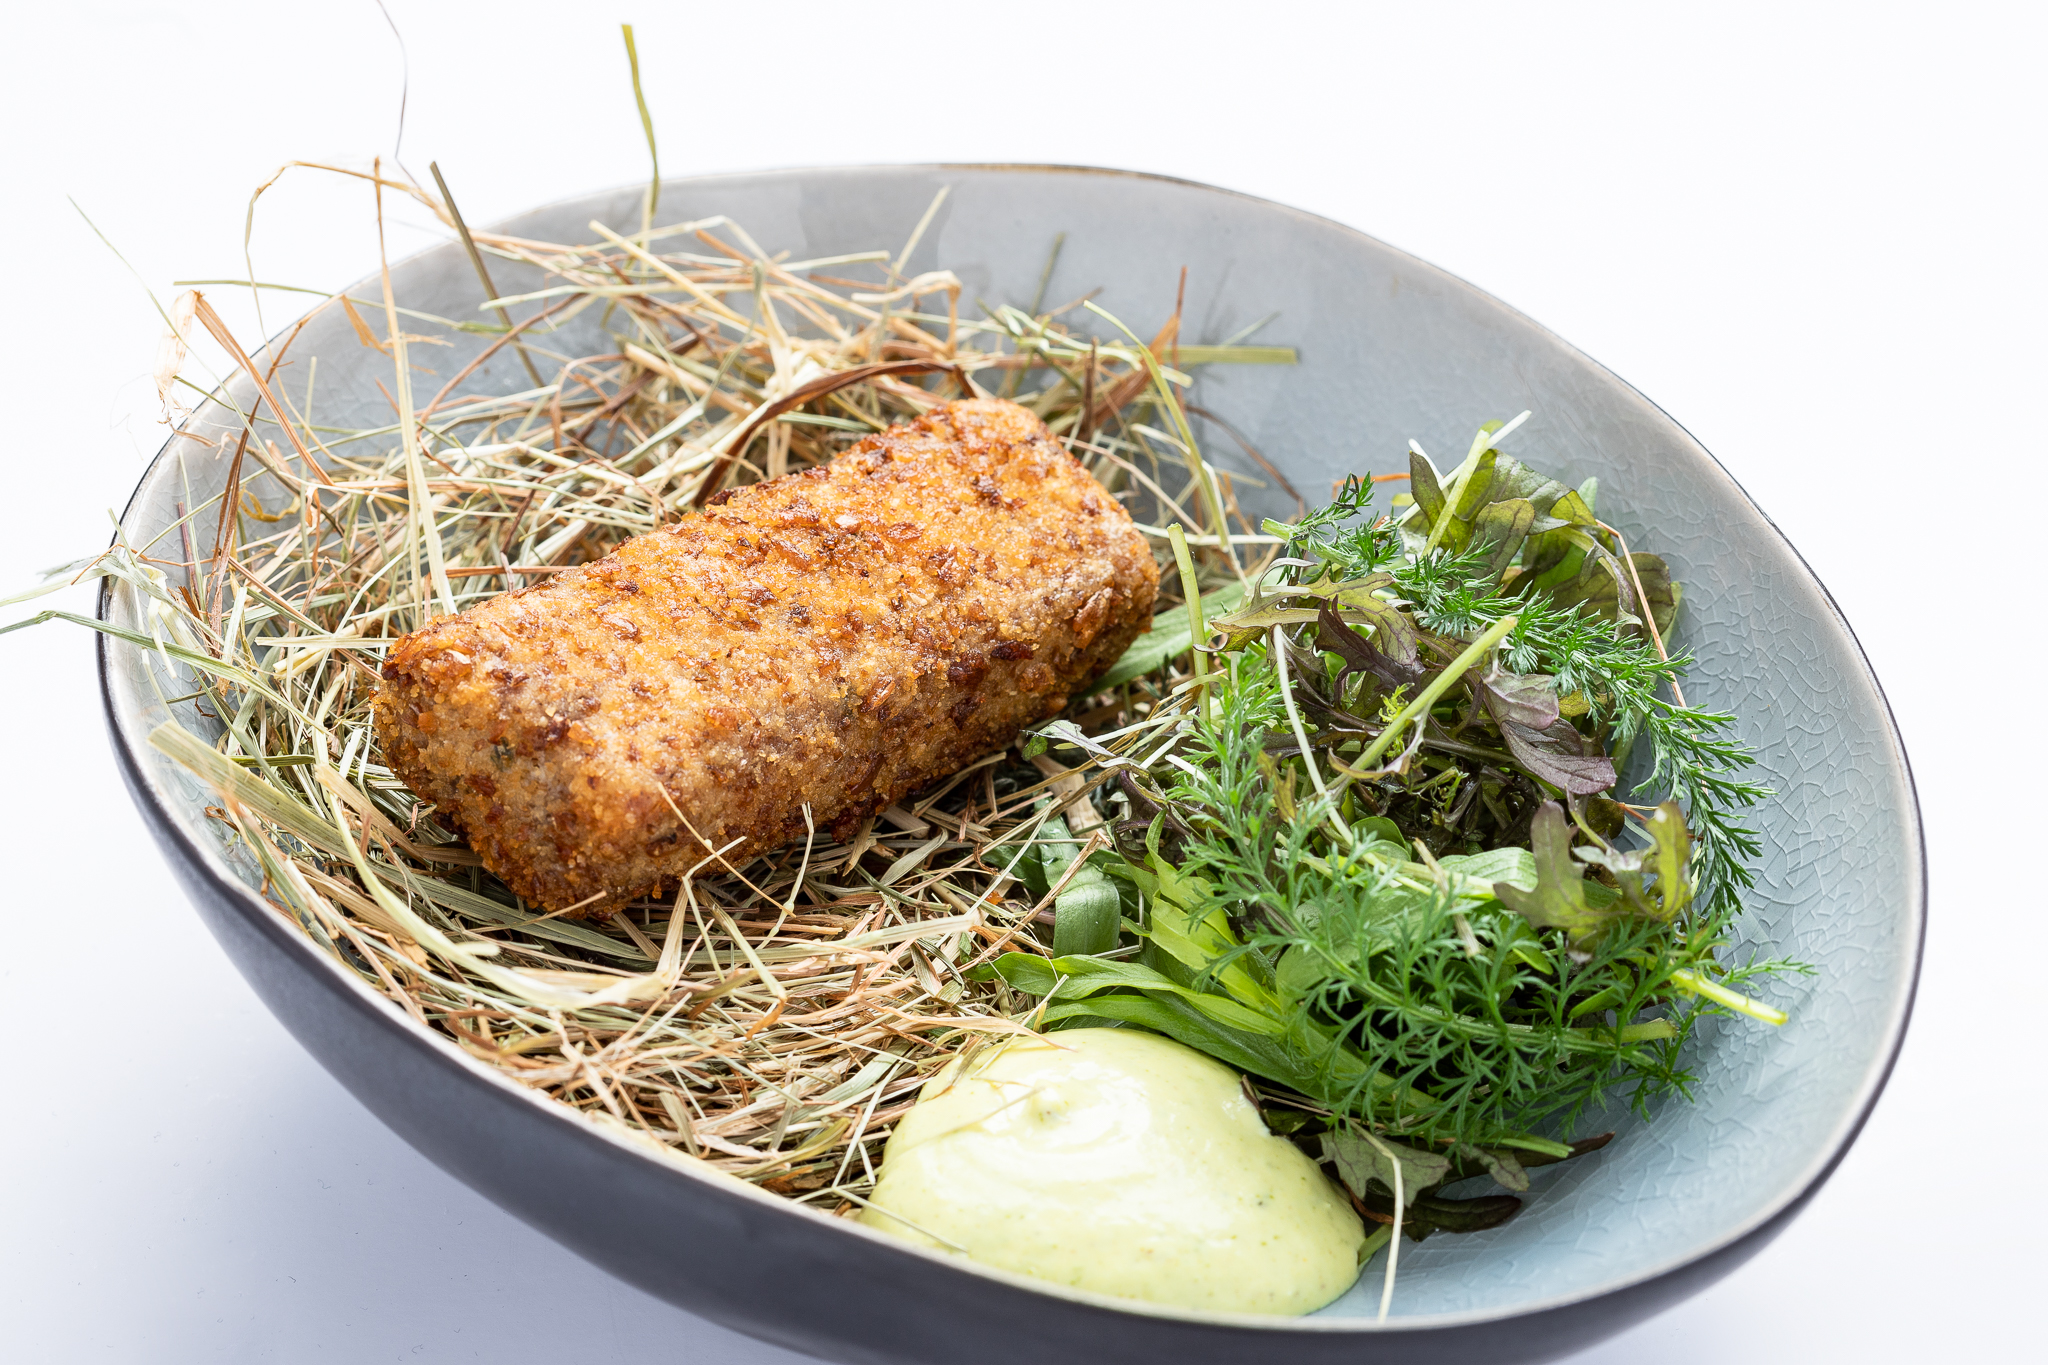 Meat croquette, Béarnaise cream, herb salad - GOFFIN *